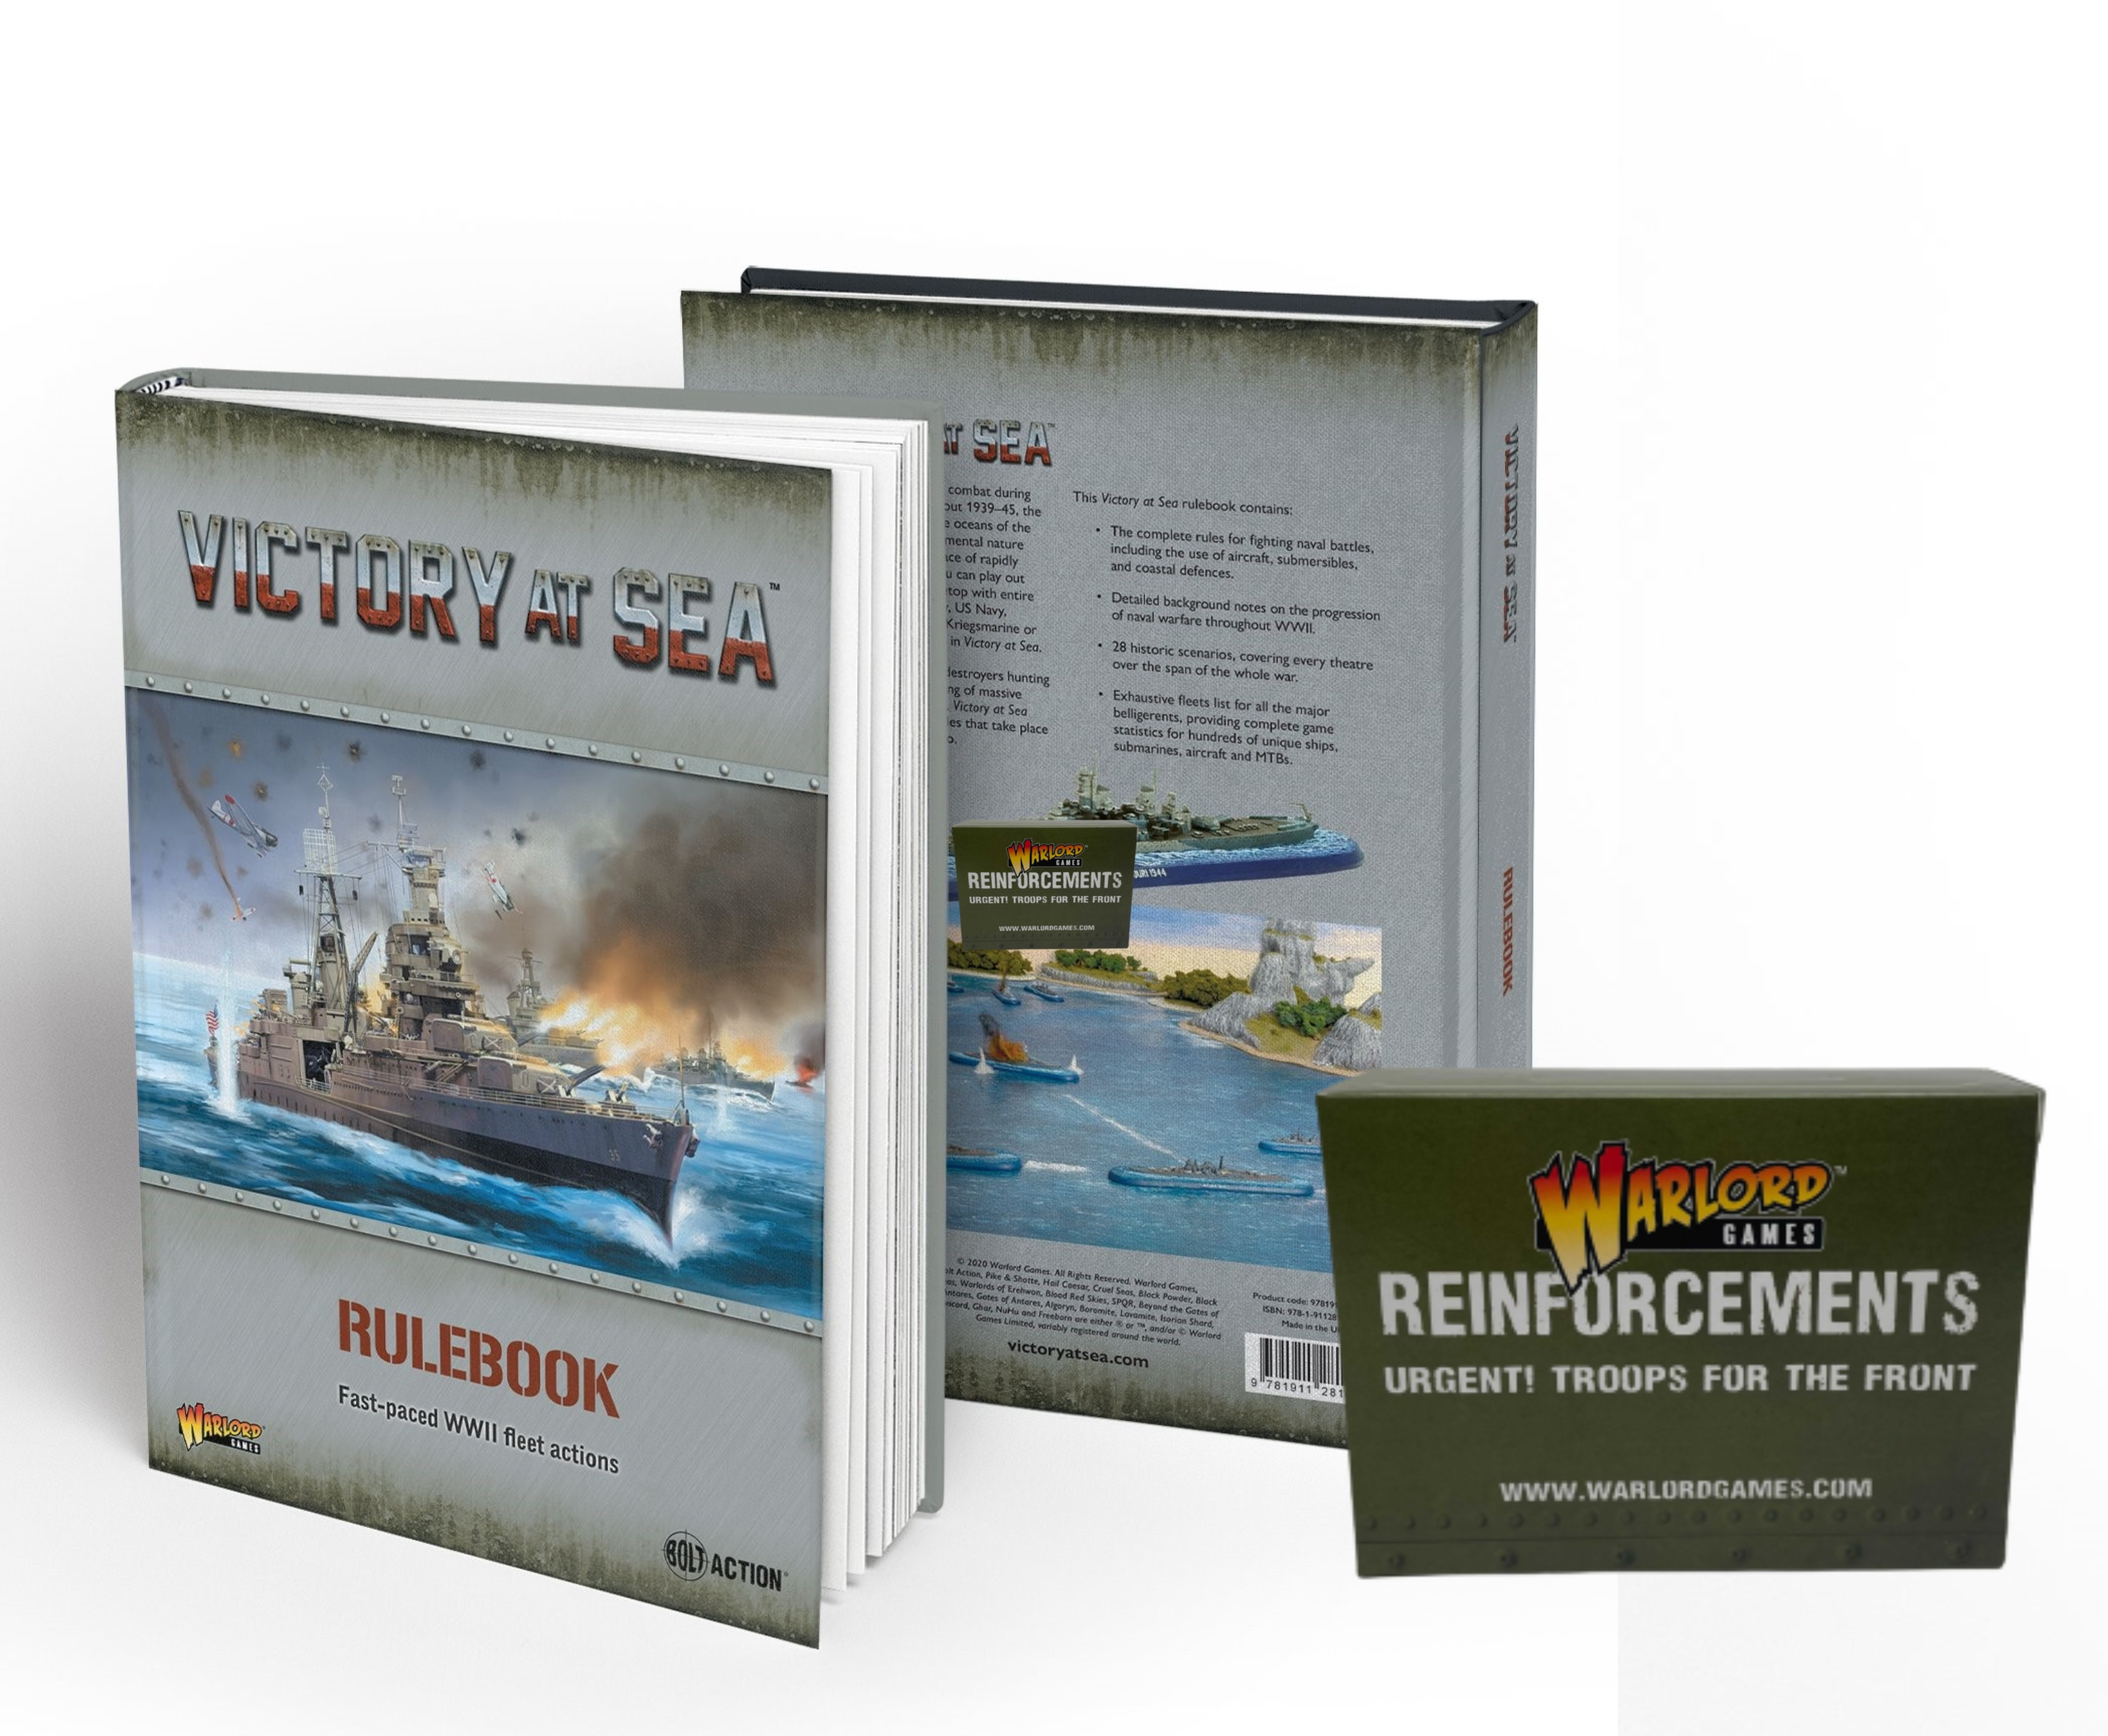 Victory at Sea Bundle, Rulebook Hardback and German Tanker Altmark Miniature (Exclusive)